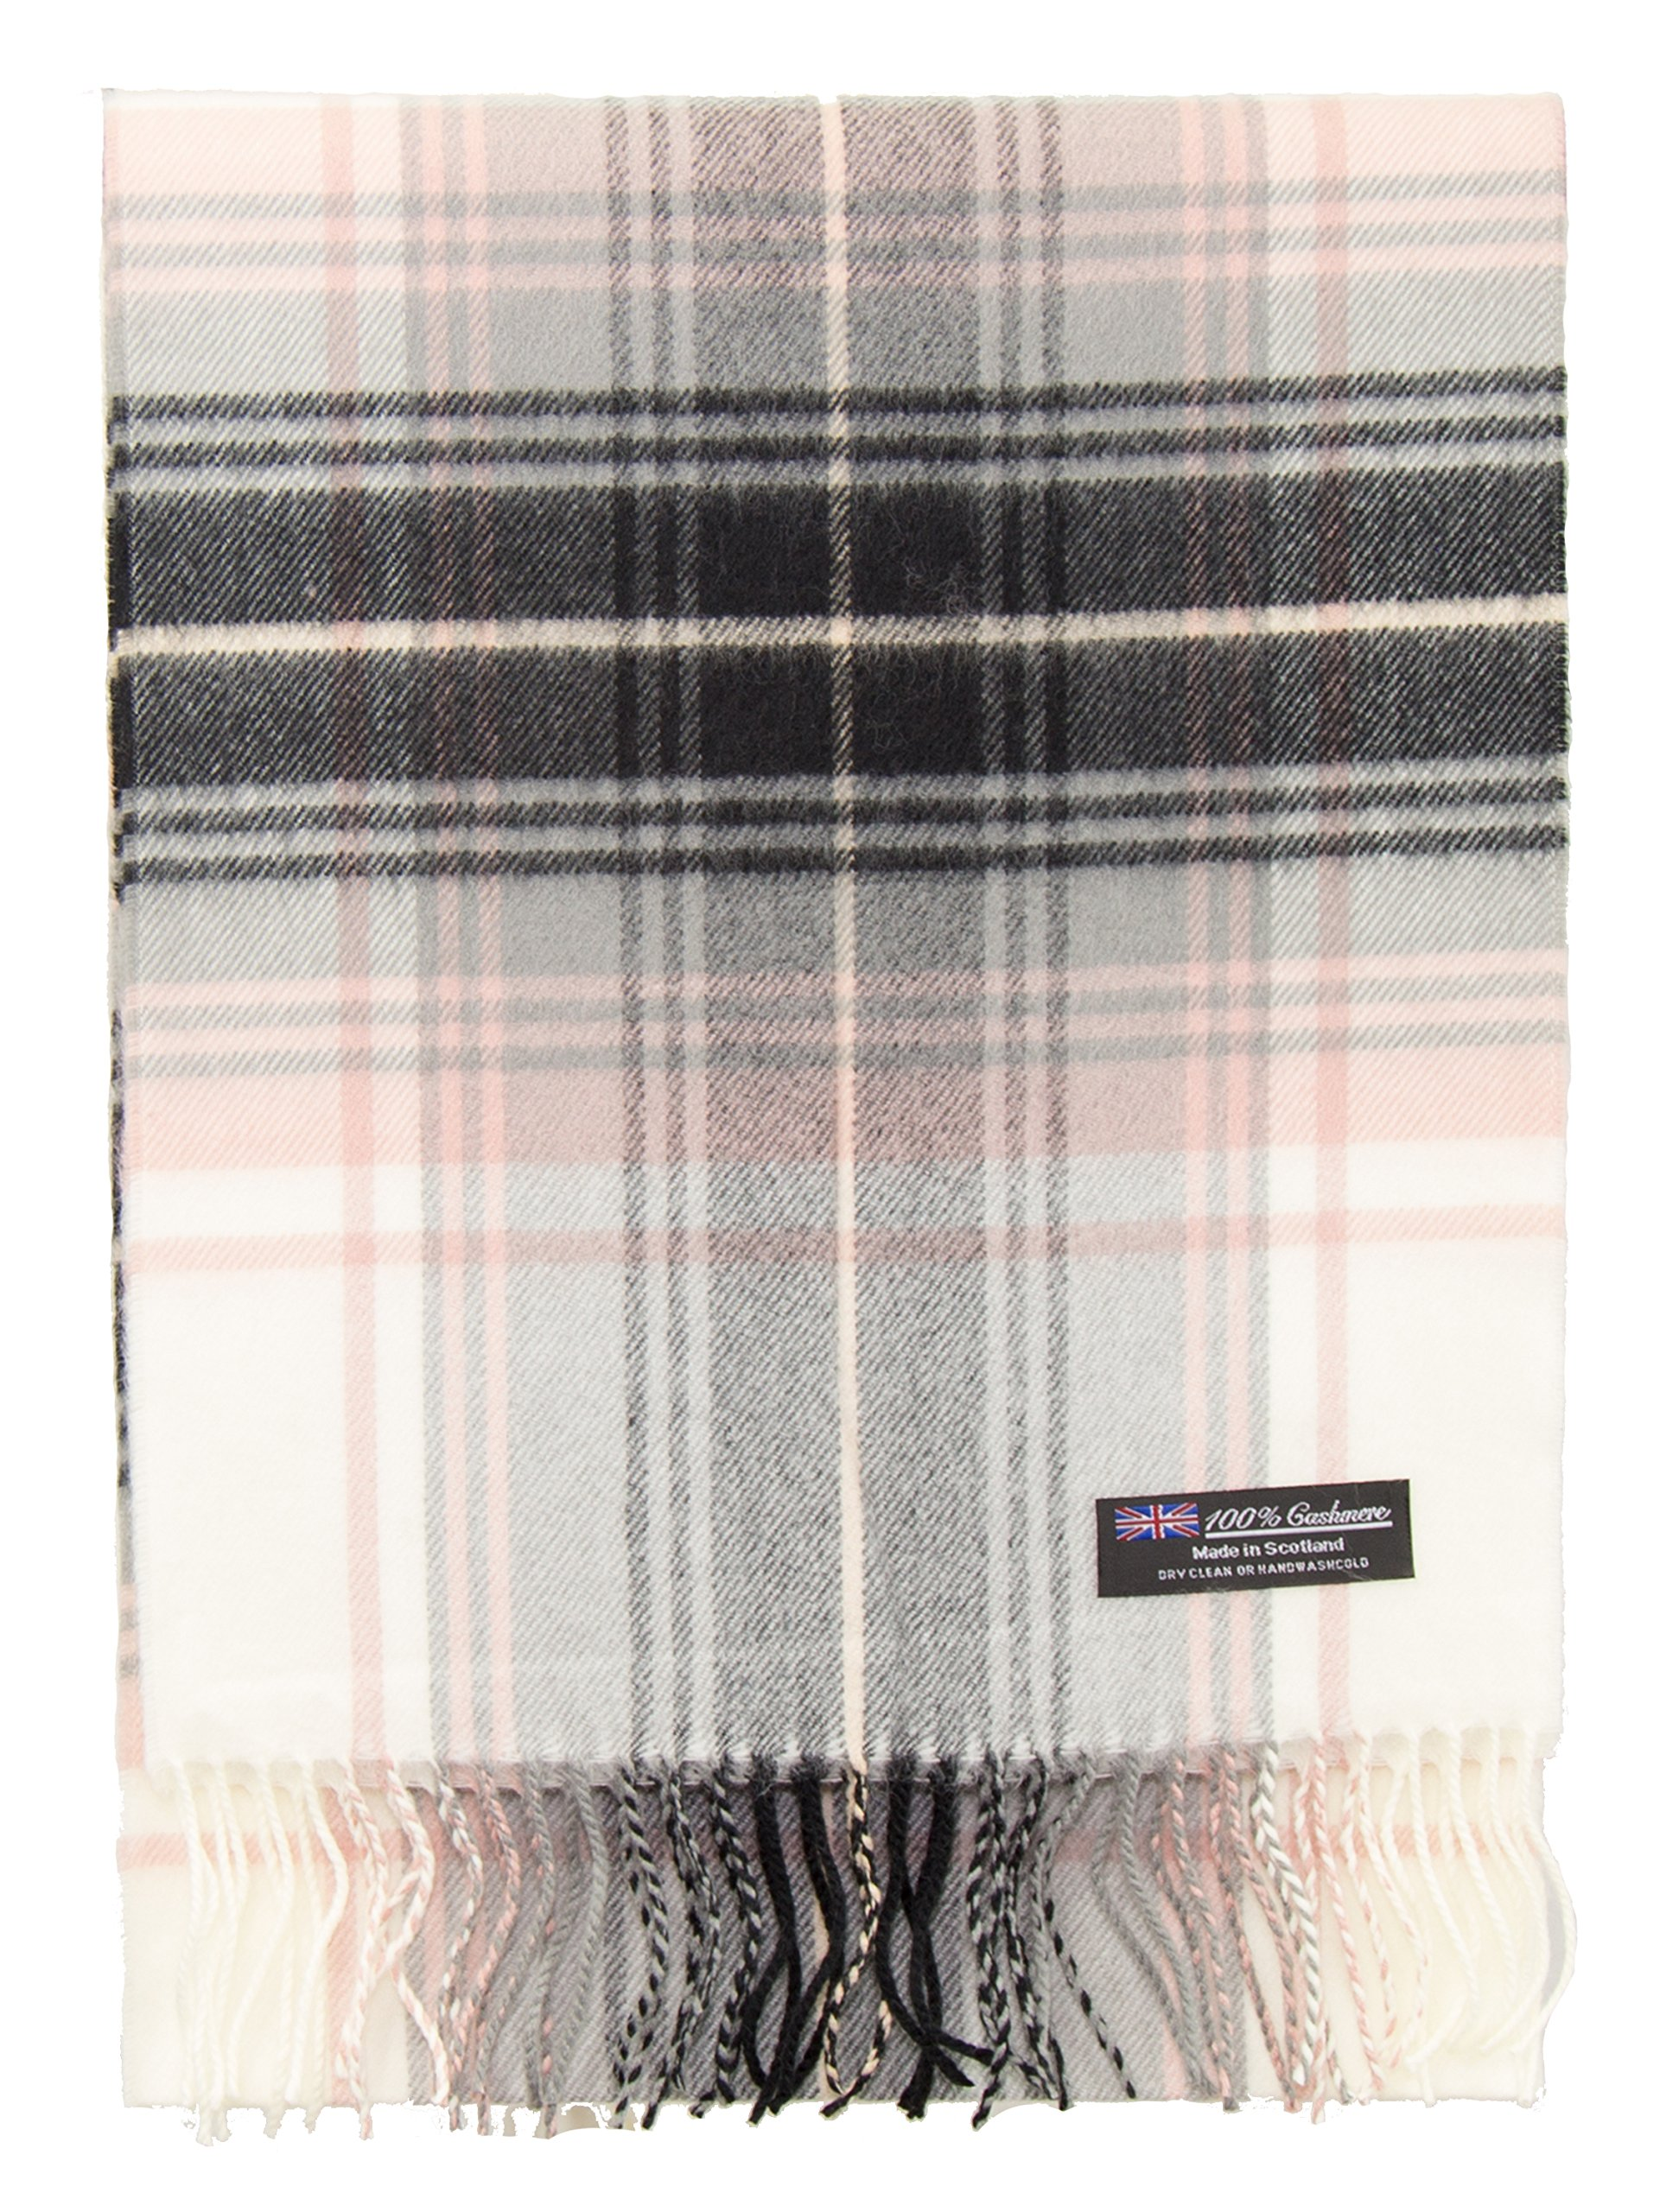 2 PLY 100% Cashmere Winter Scarf Elegant Collection Made in Scotland Warm Soft Wool Solid Plaid (Pink Cream Black 1612)